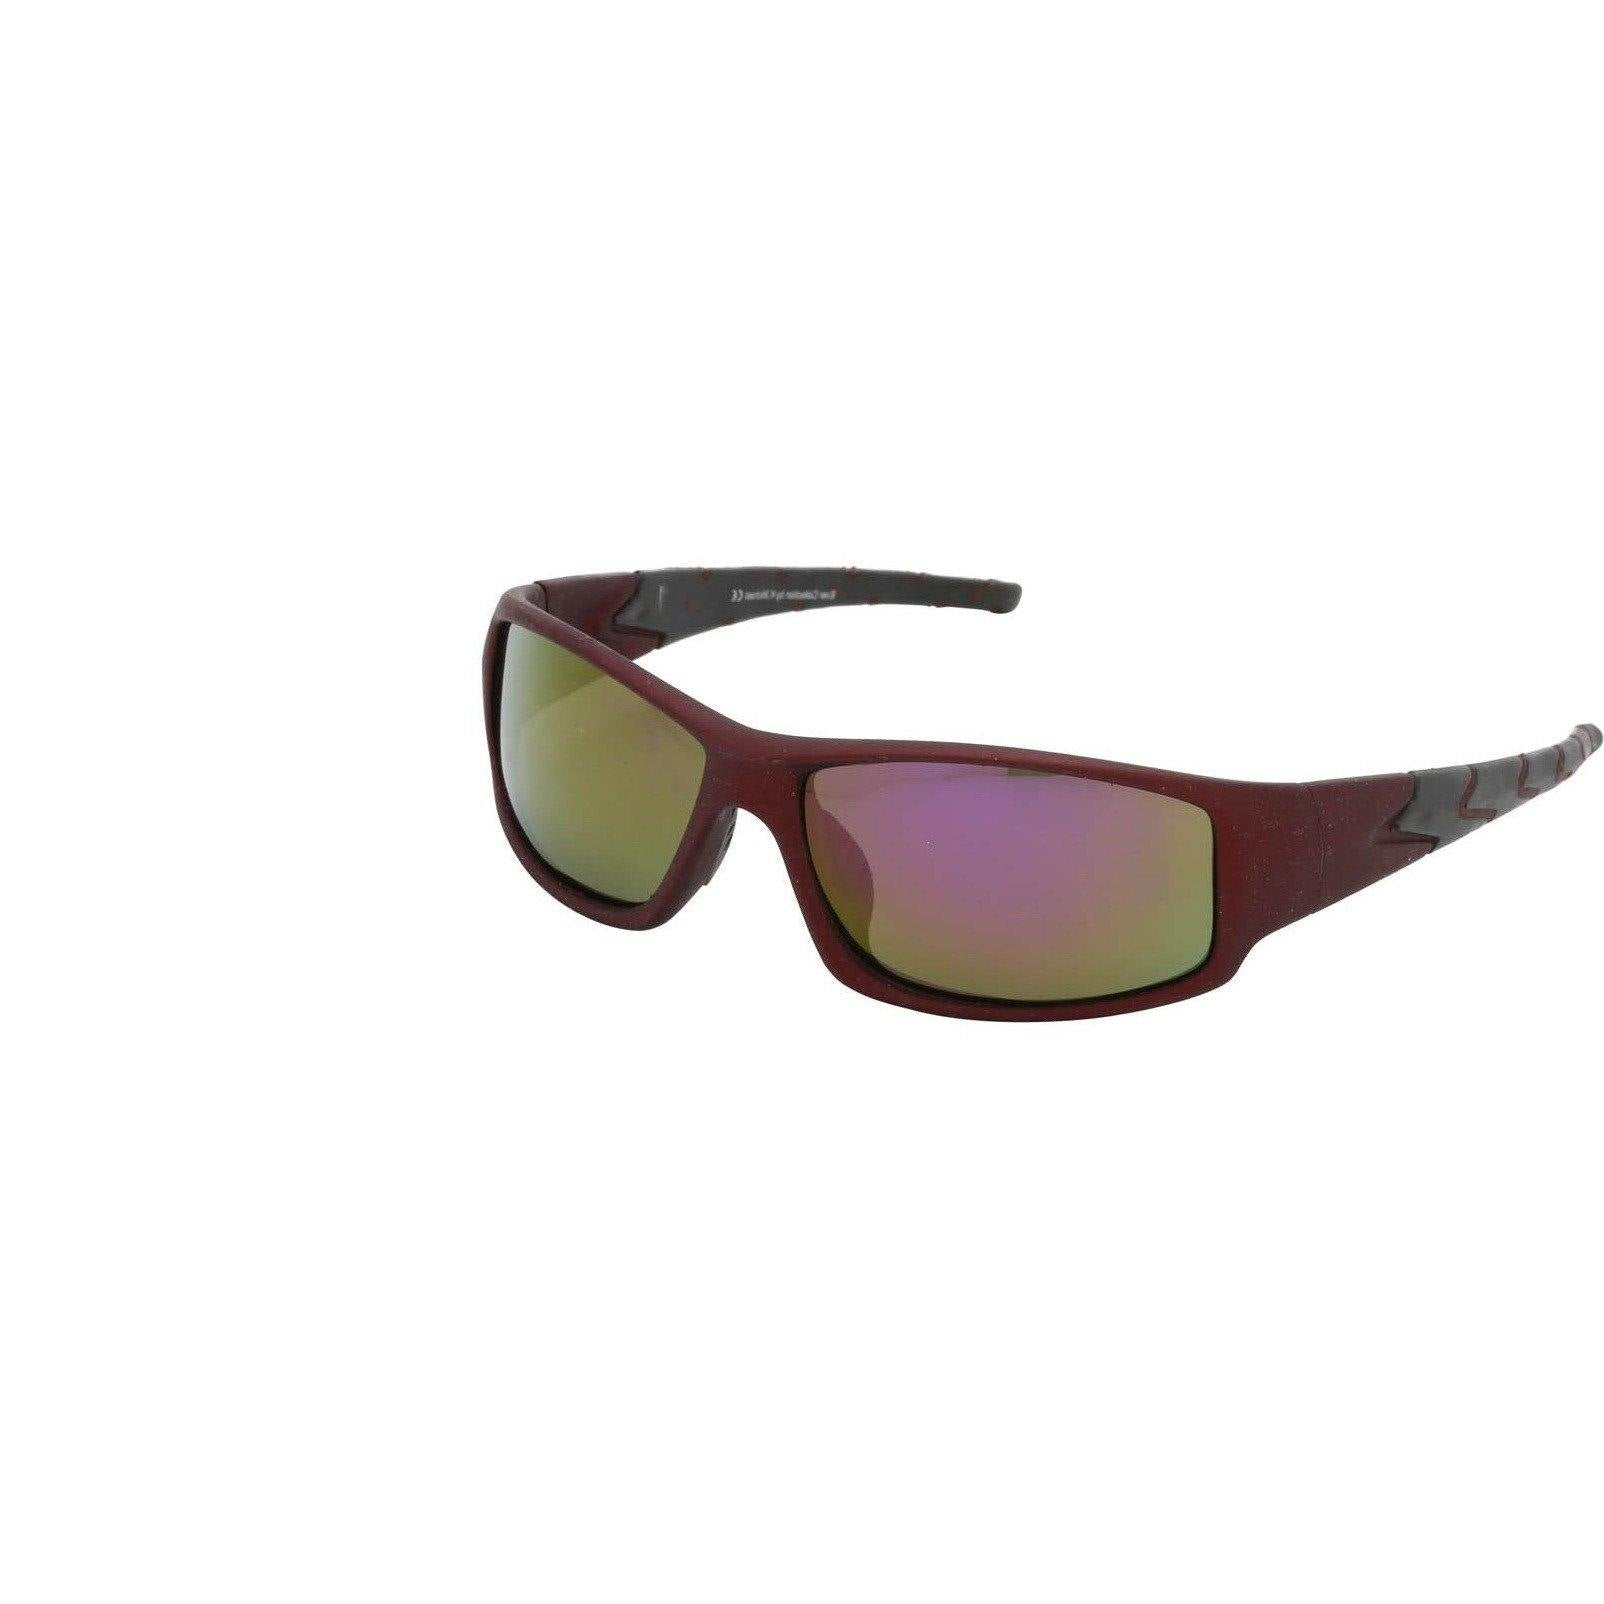 "Sports Sunglasses Designer Sunglasses Model ""Scorpion Tail"" Maroon By: The Ever Collection"